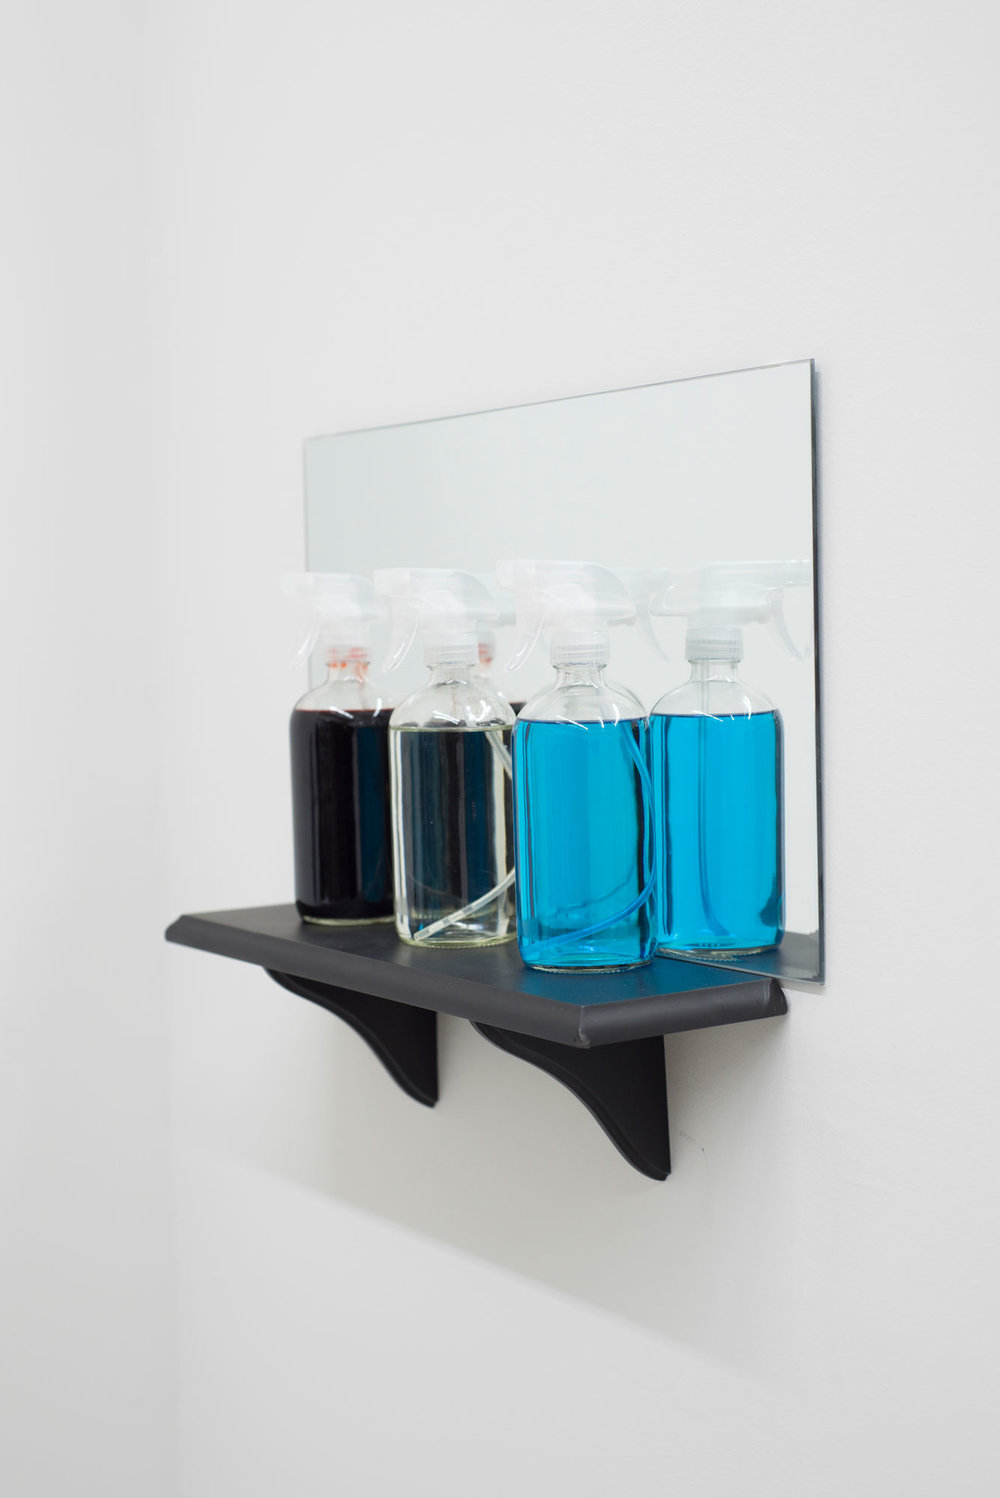 Housekeepers' Requiem, glass spray bottles, mirror, shelf, Windex, tequila, fake blood, 2018